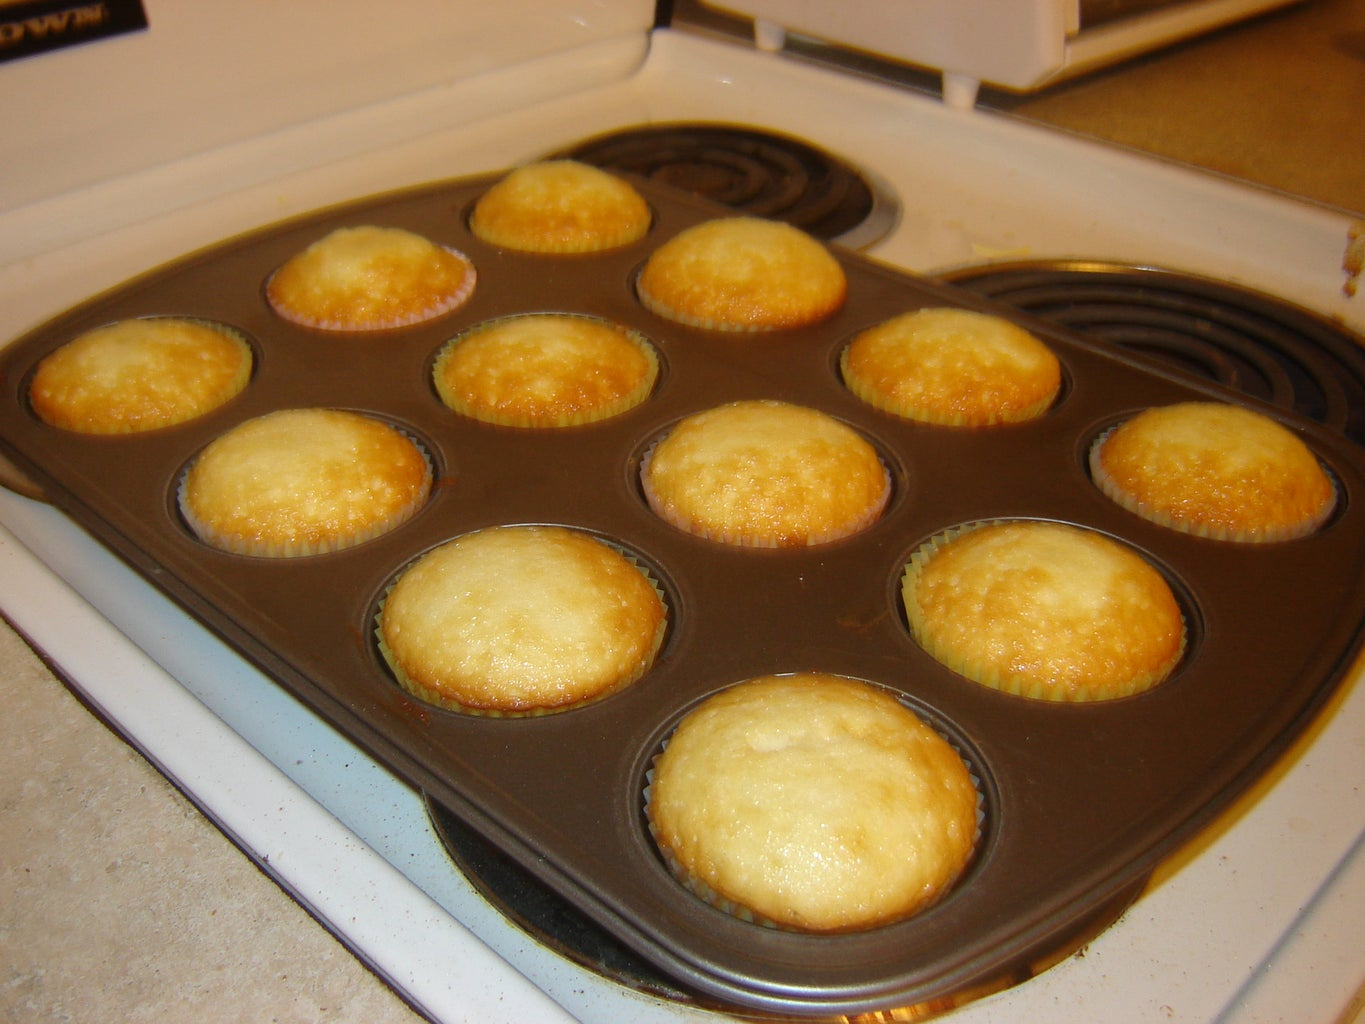 Making the Cupcakes